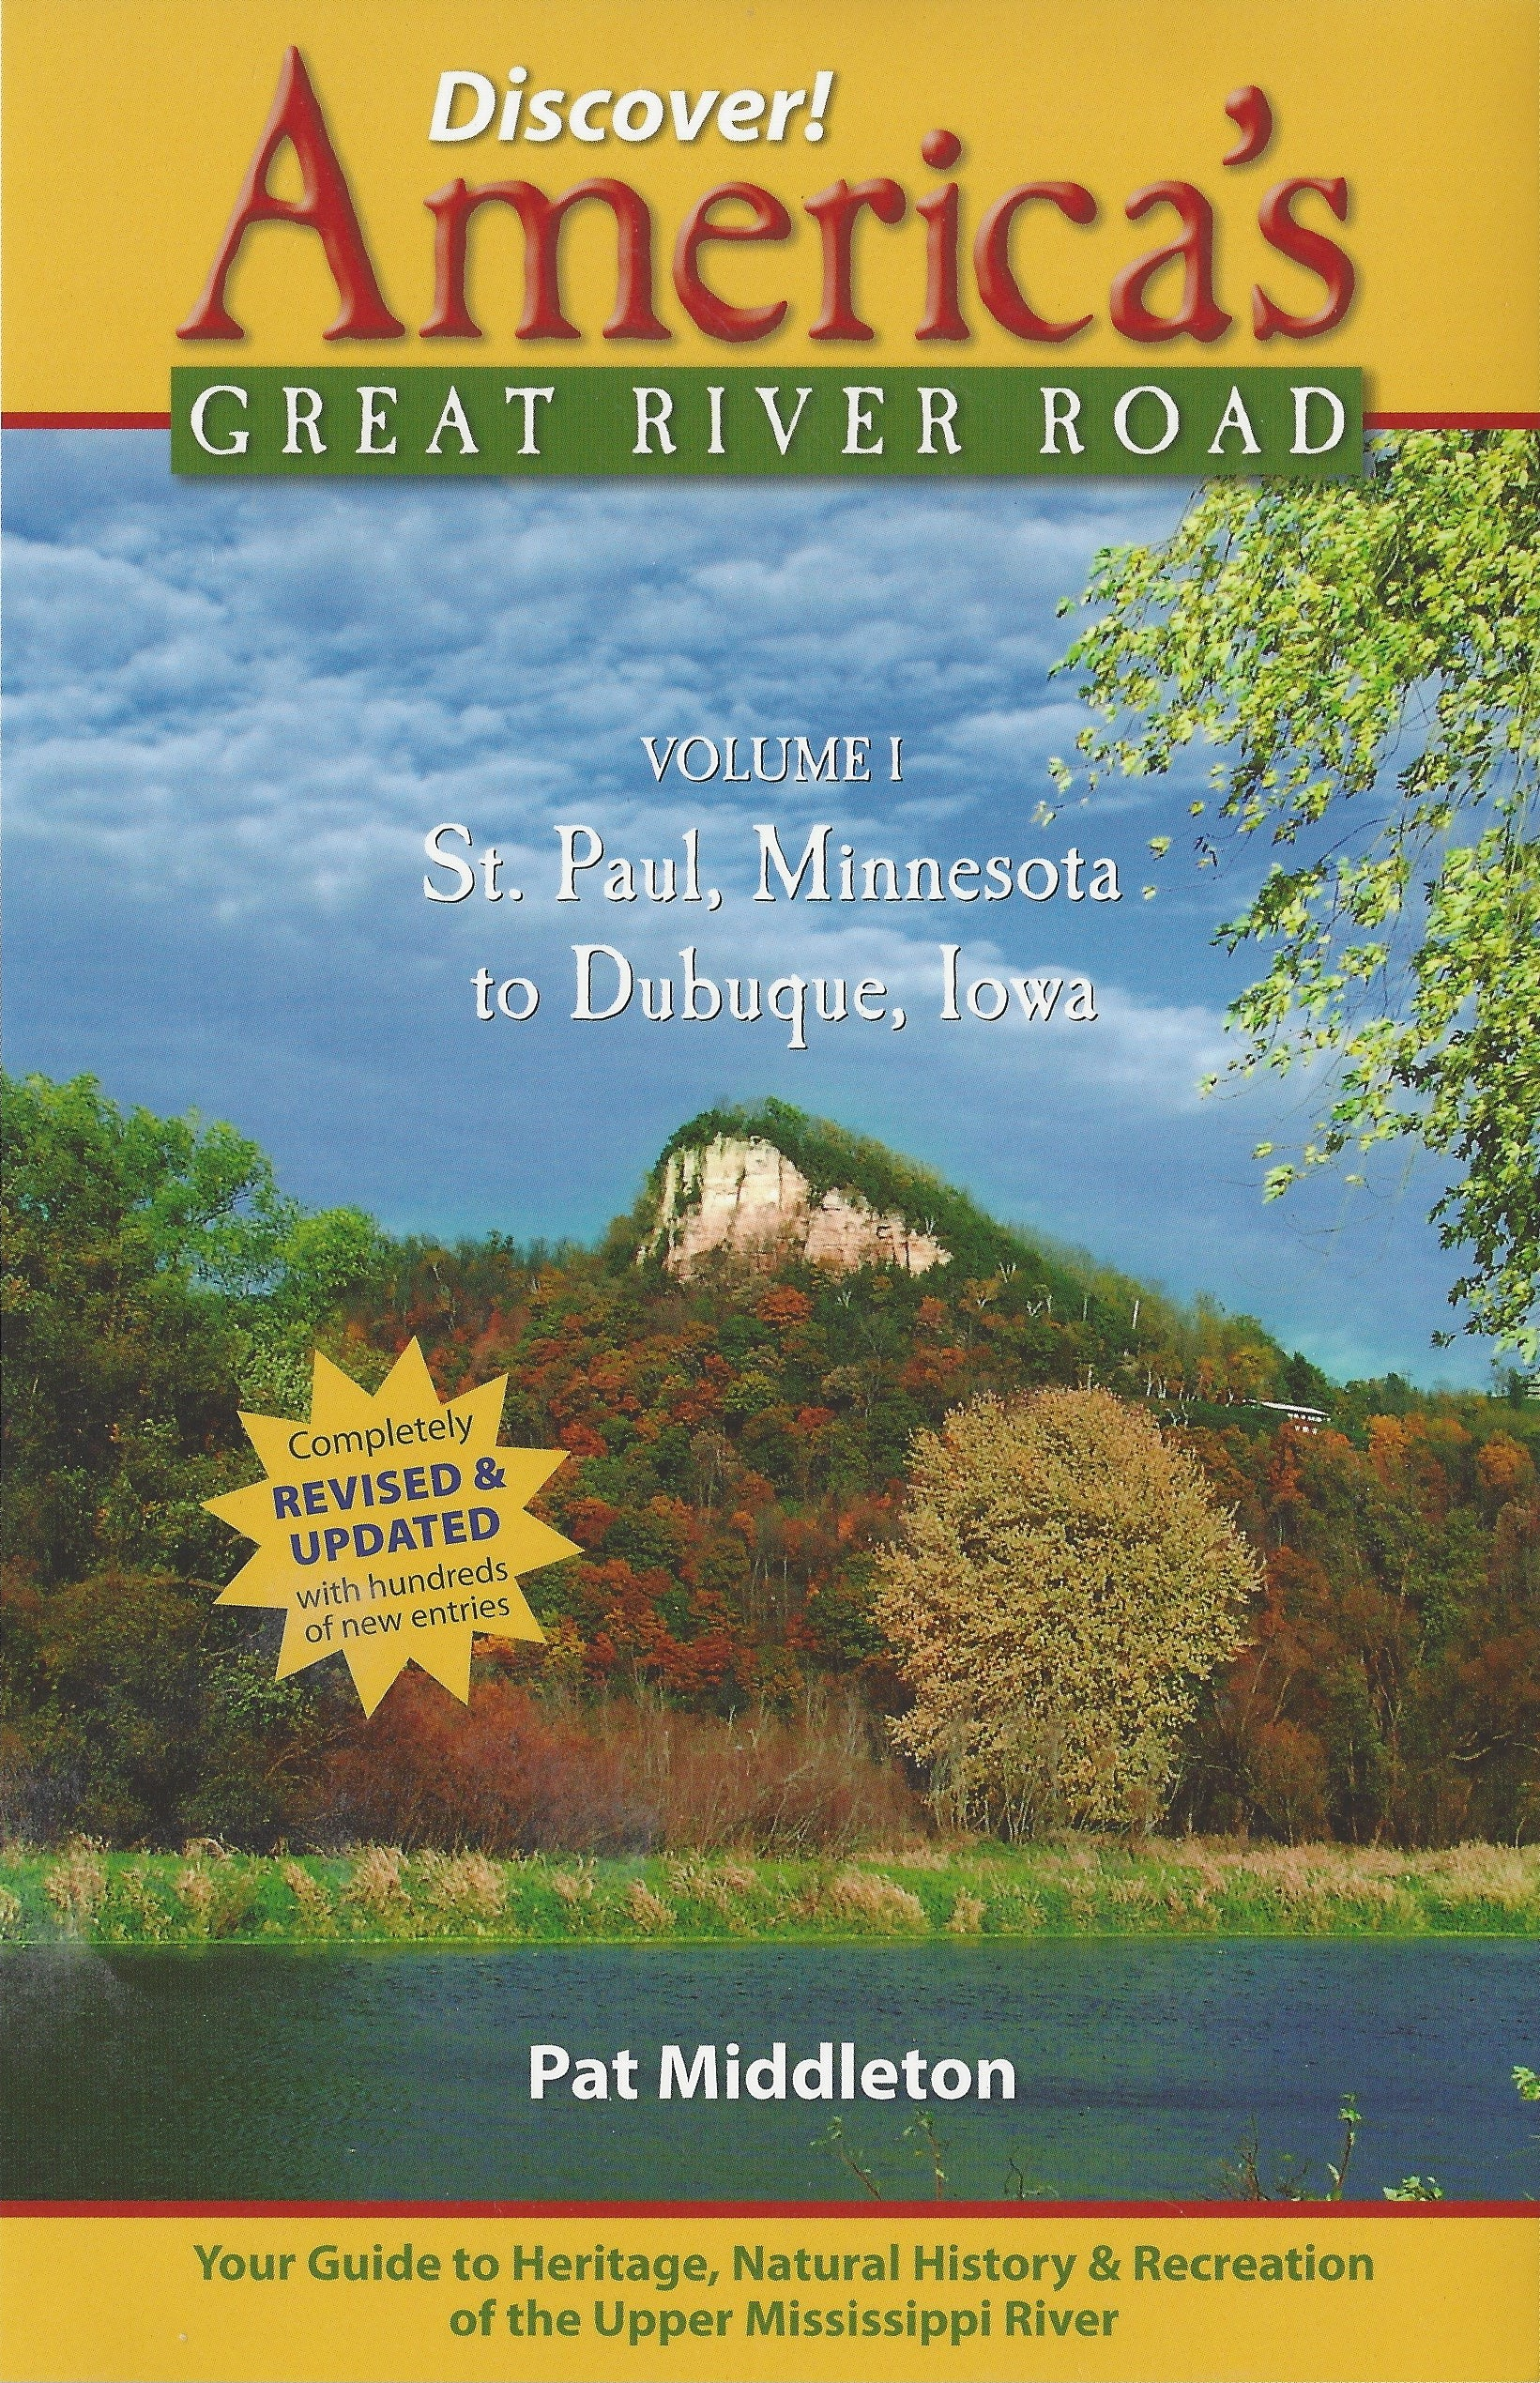 Discover America's Great River Road, Vol 1 - St.Paul Minnesota to Dubuque Iowa